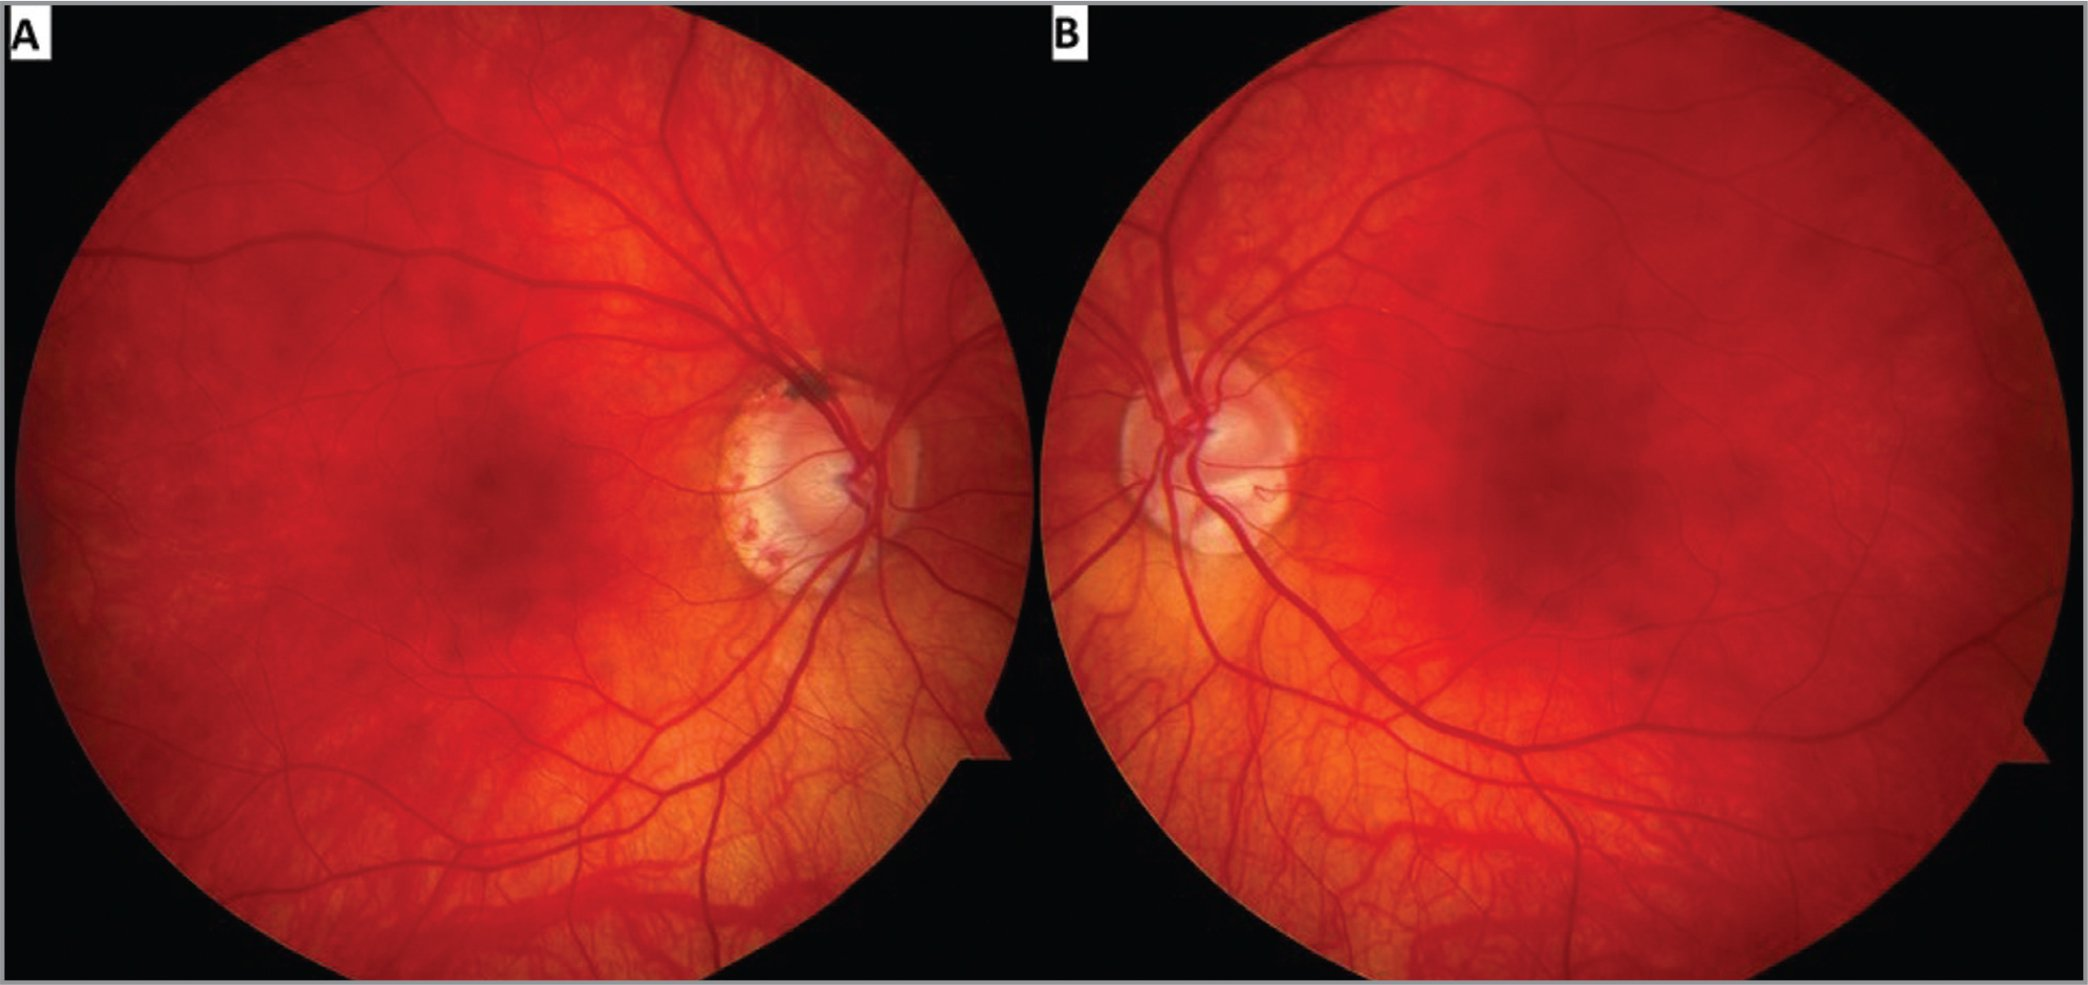 Dilated fundus exam revealed normal-appearing vitreous and vessels of both eyes. The optic nerve in the left eye was tilted inferiorly and there was a large scleral crescent in both eyes. The macula had a normal appearance in both eyes.